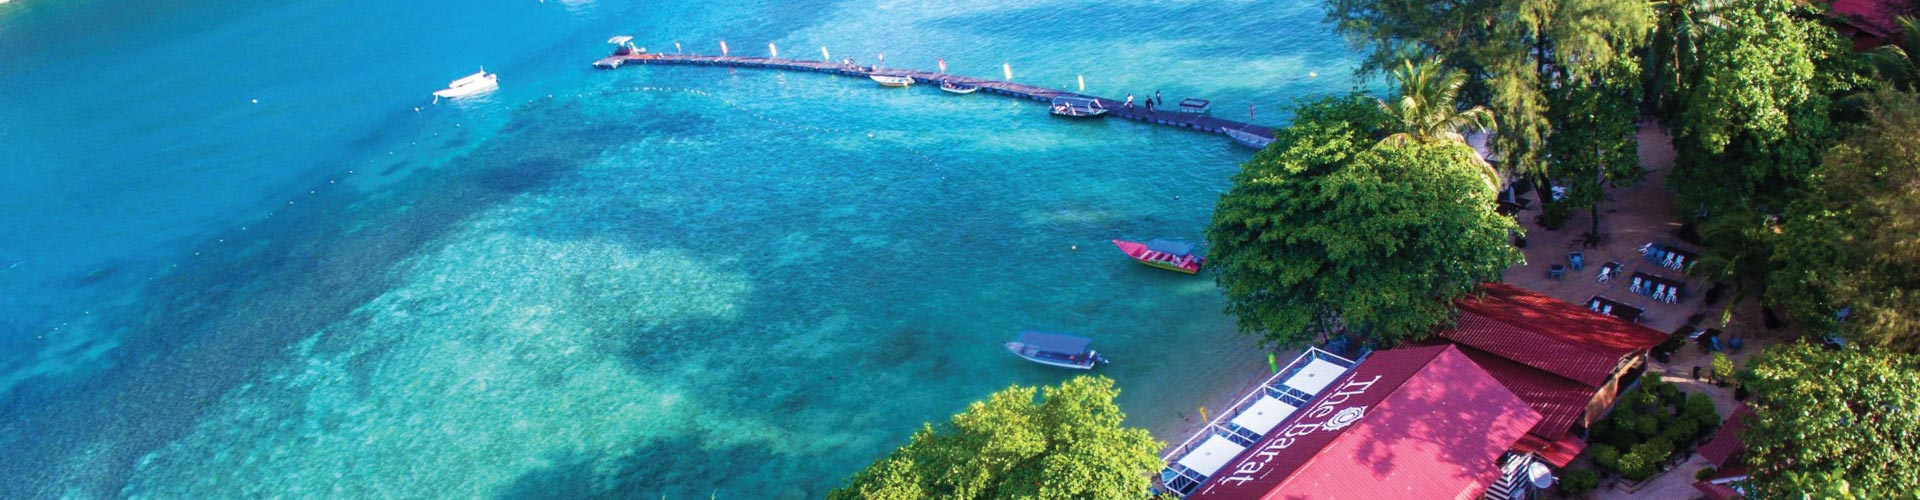 Tour - 3d2n Perhentian Island Snorkeling Package @ The Barat Perhentian - Mysm22llp03kh - R7